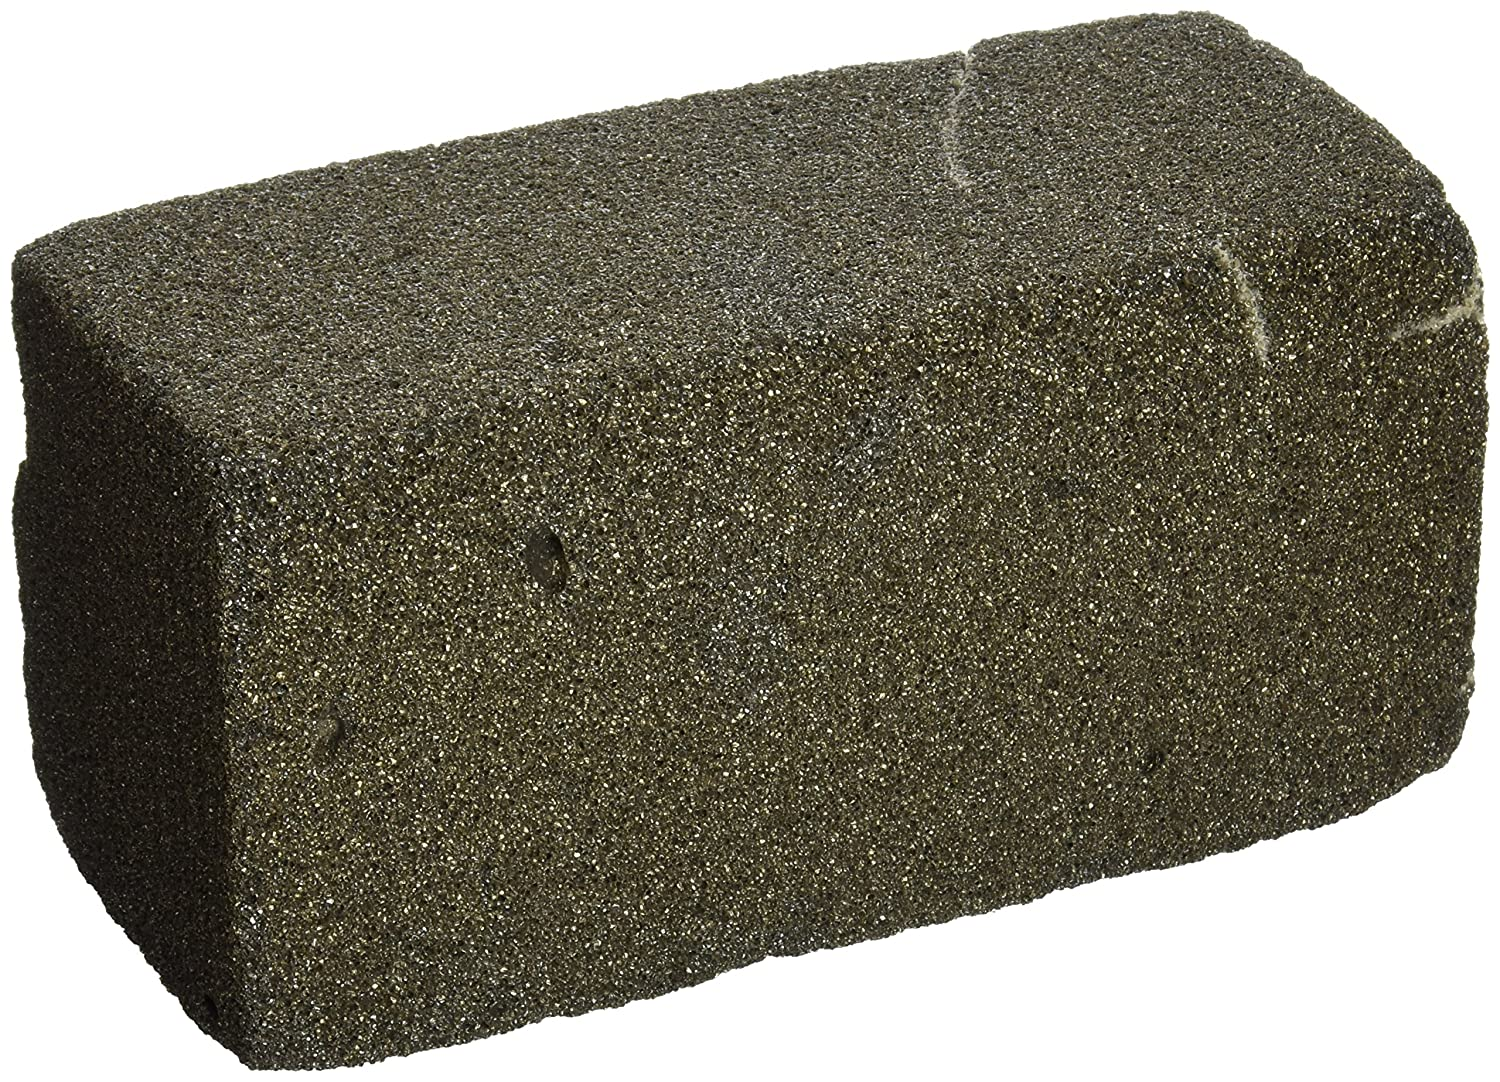 """Grill-Brick Grill Cleaner GB12, 4"""" Length x 3-1/2"""" Width x 8"""" Height"""